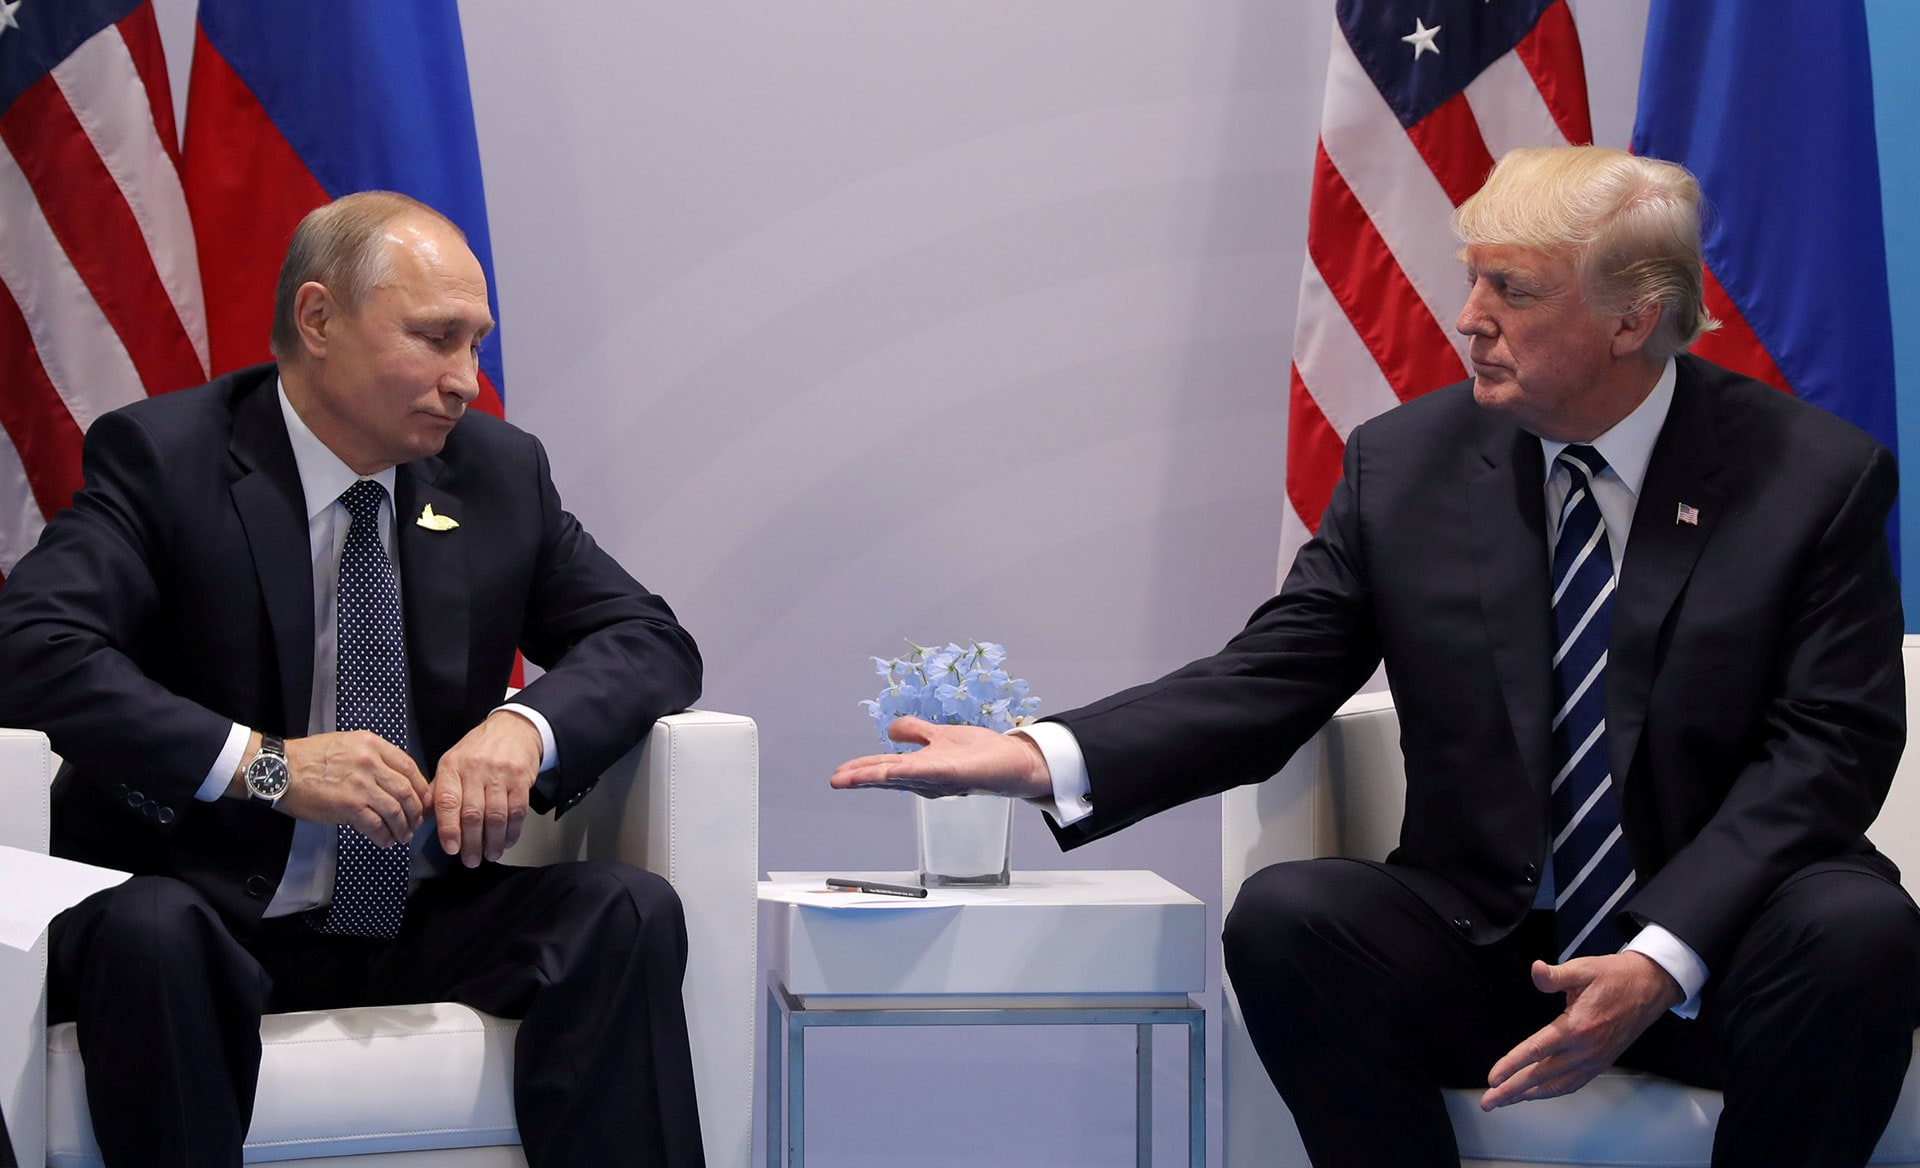 President Donald Trump meets with Russian President Vladimir Putin